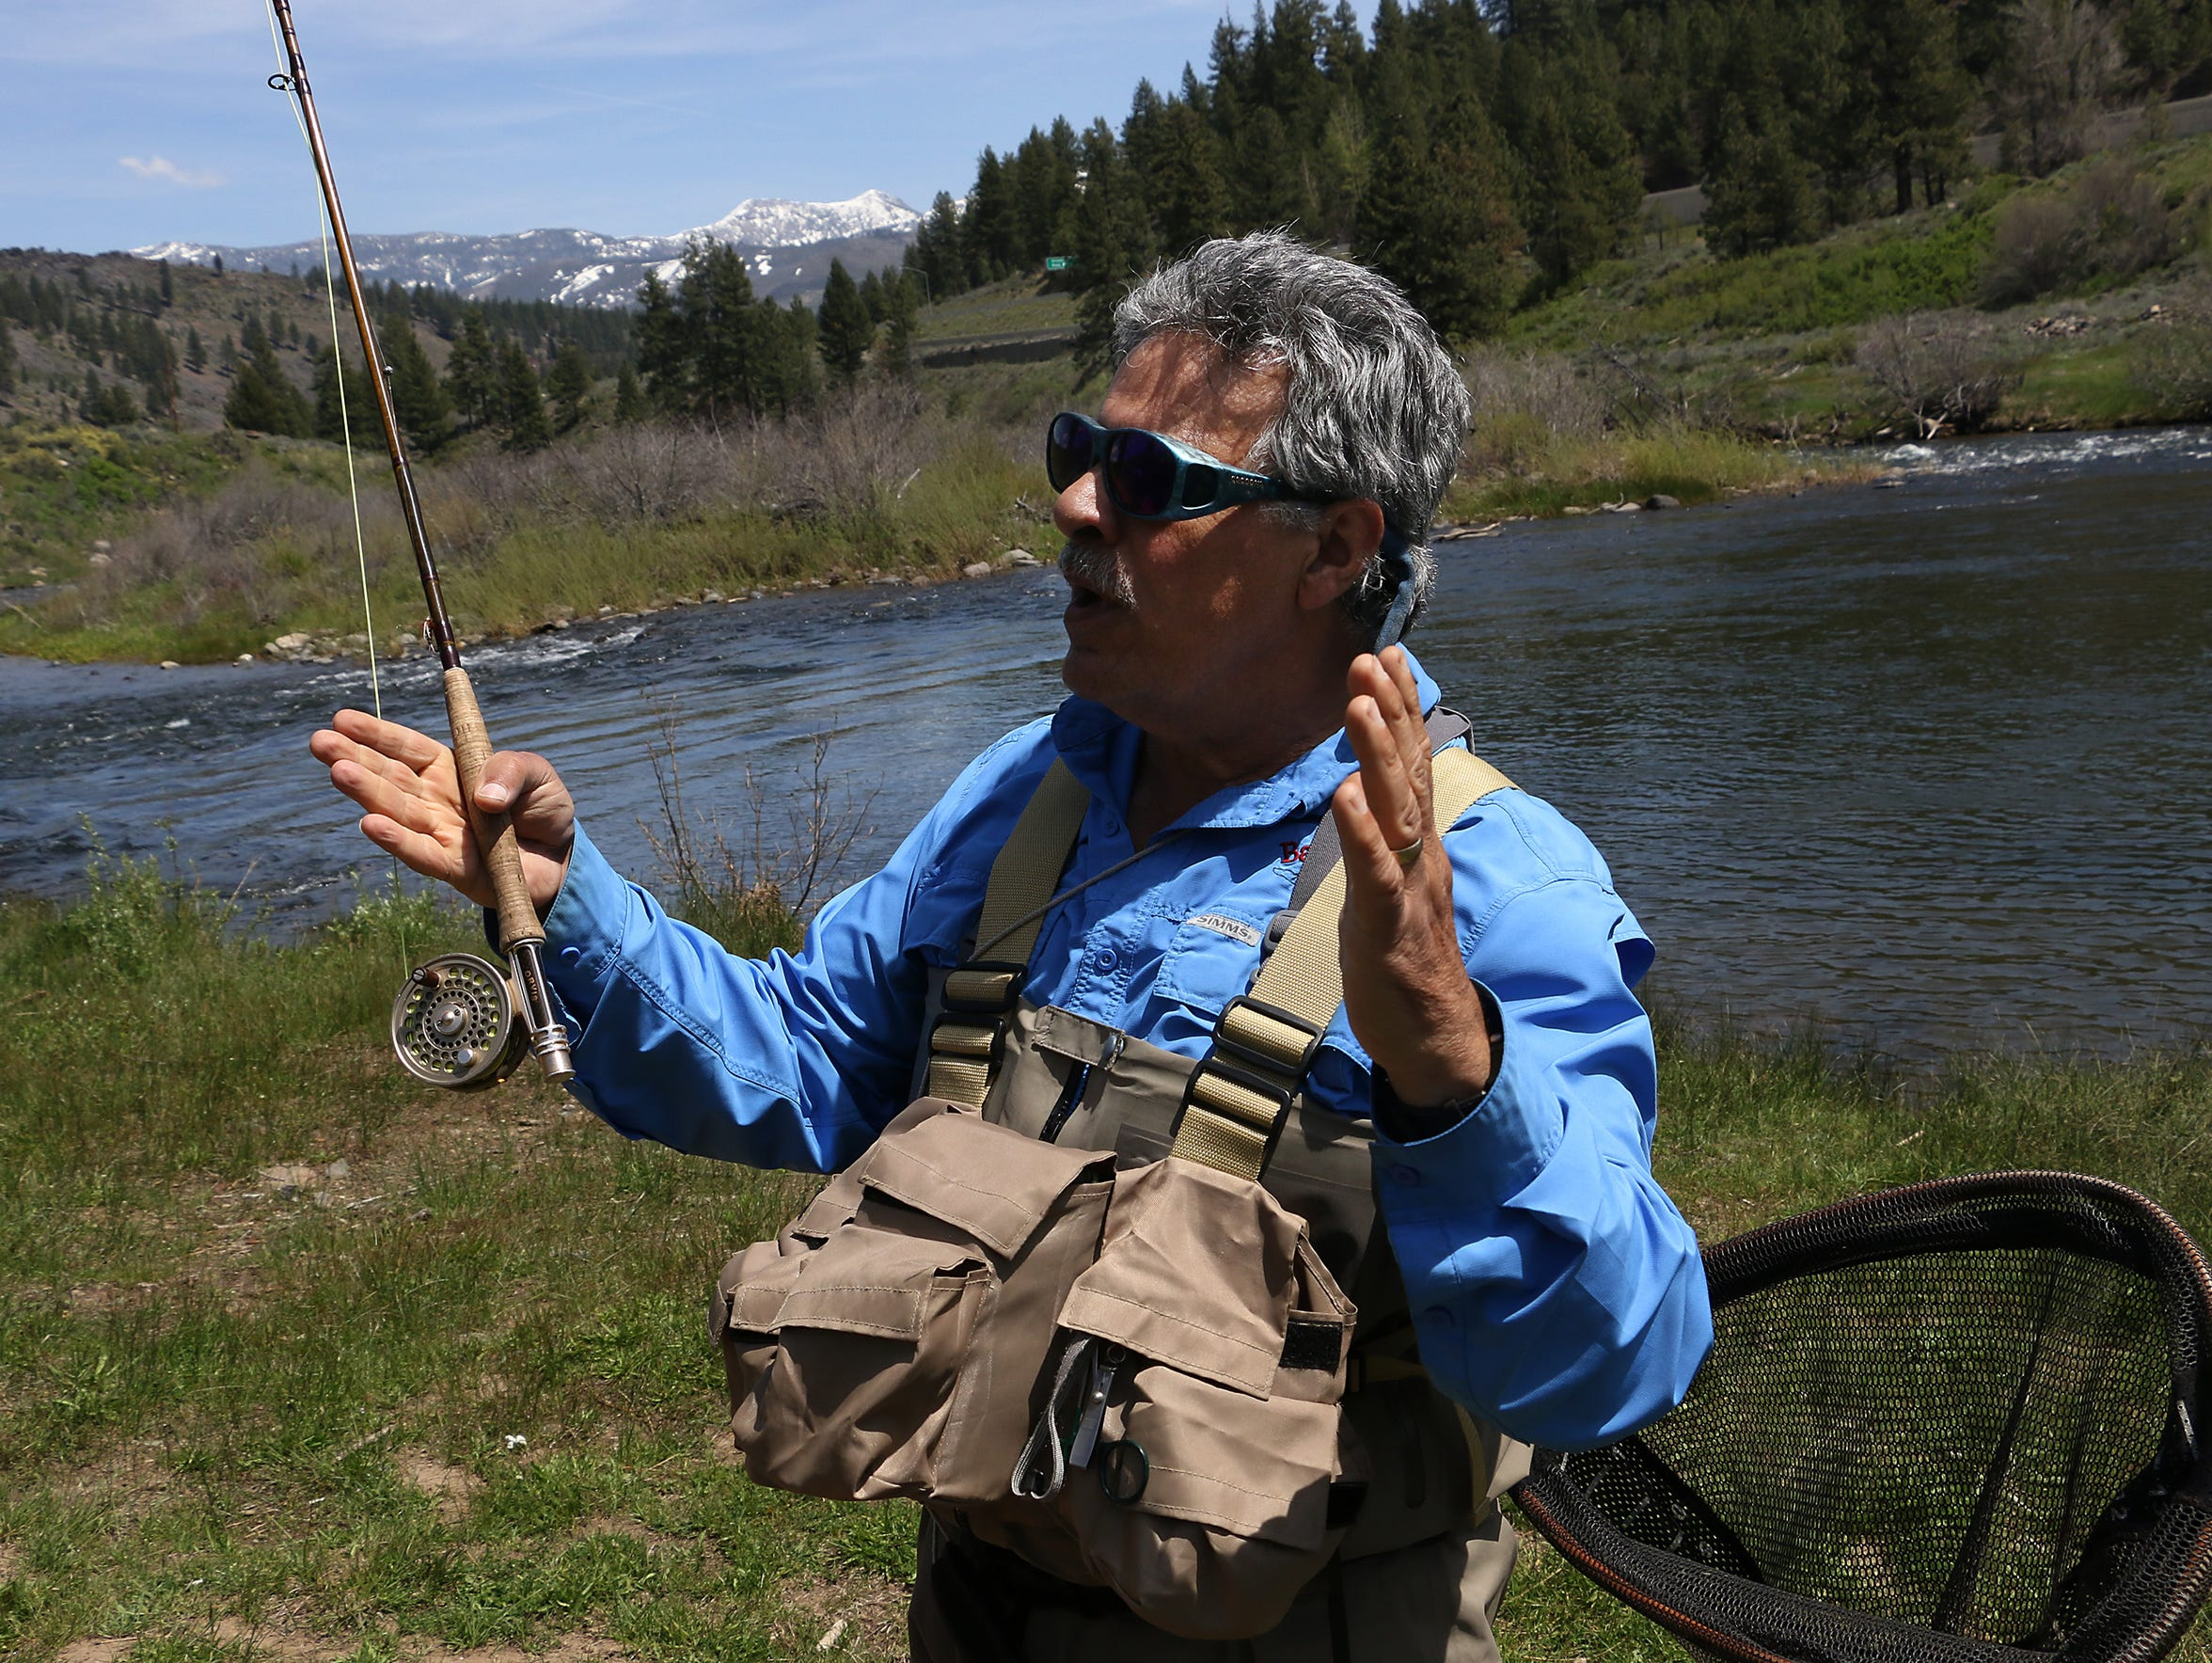 Fishing guide Frank Pisciotta has been fishing on the